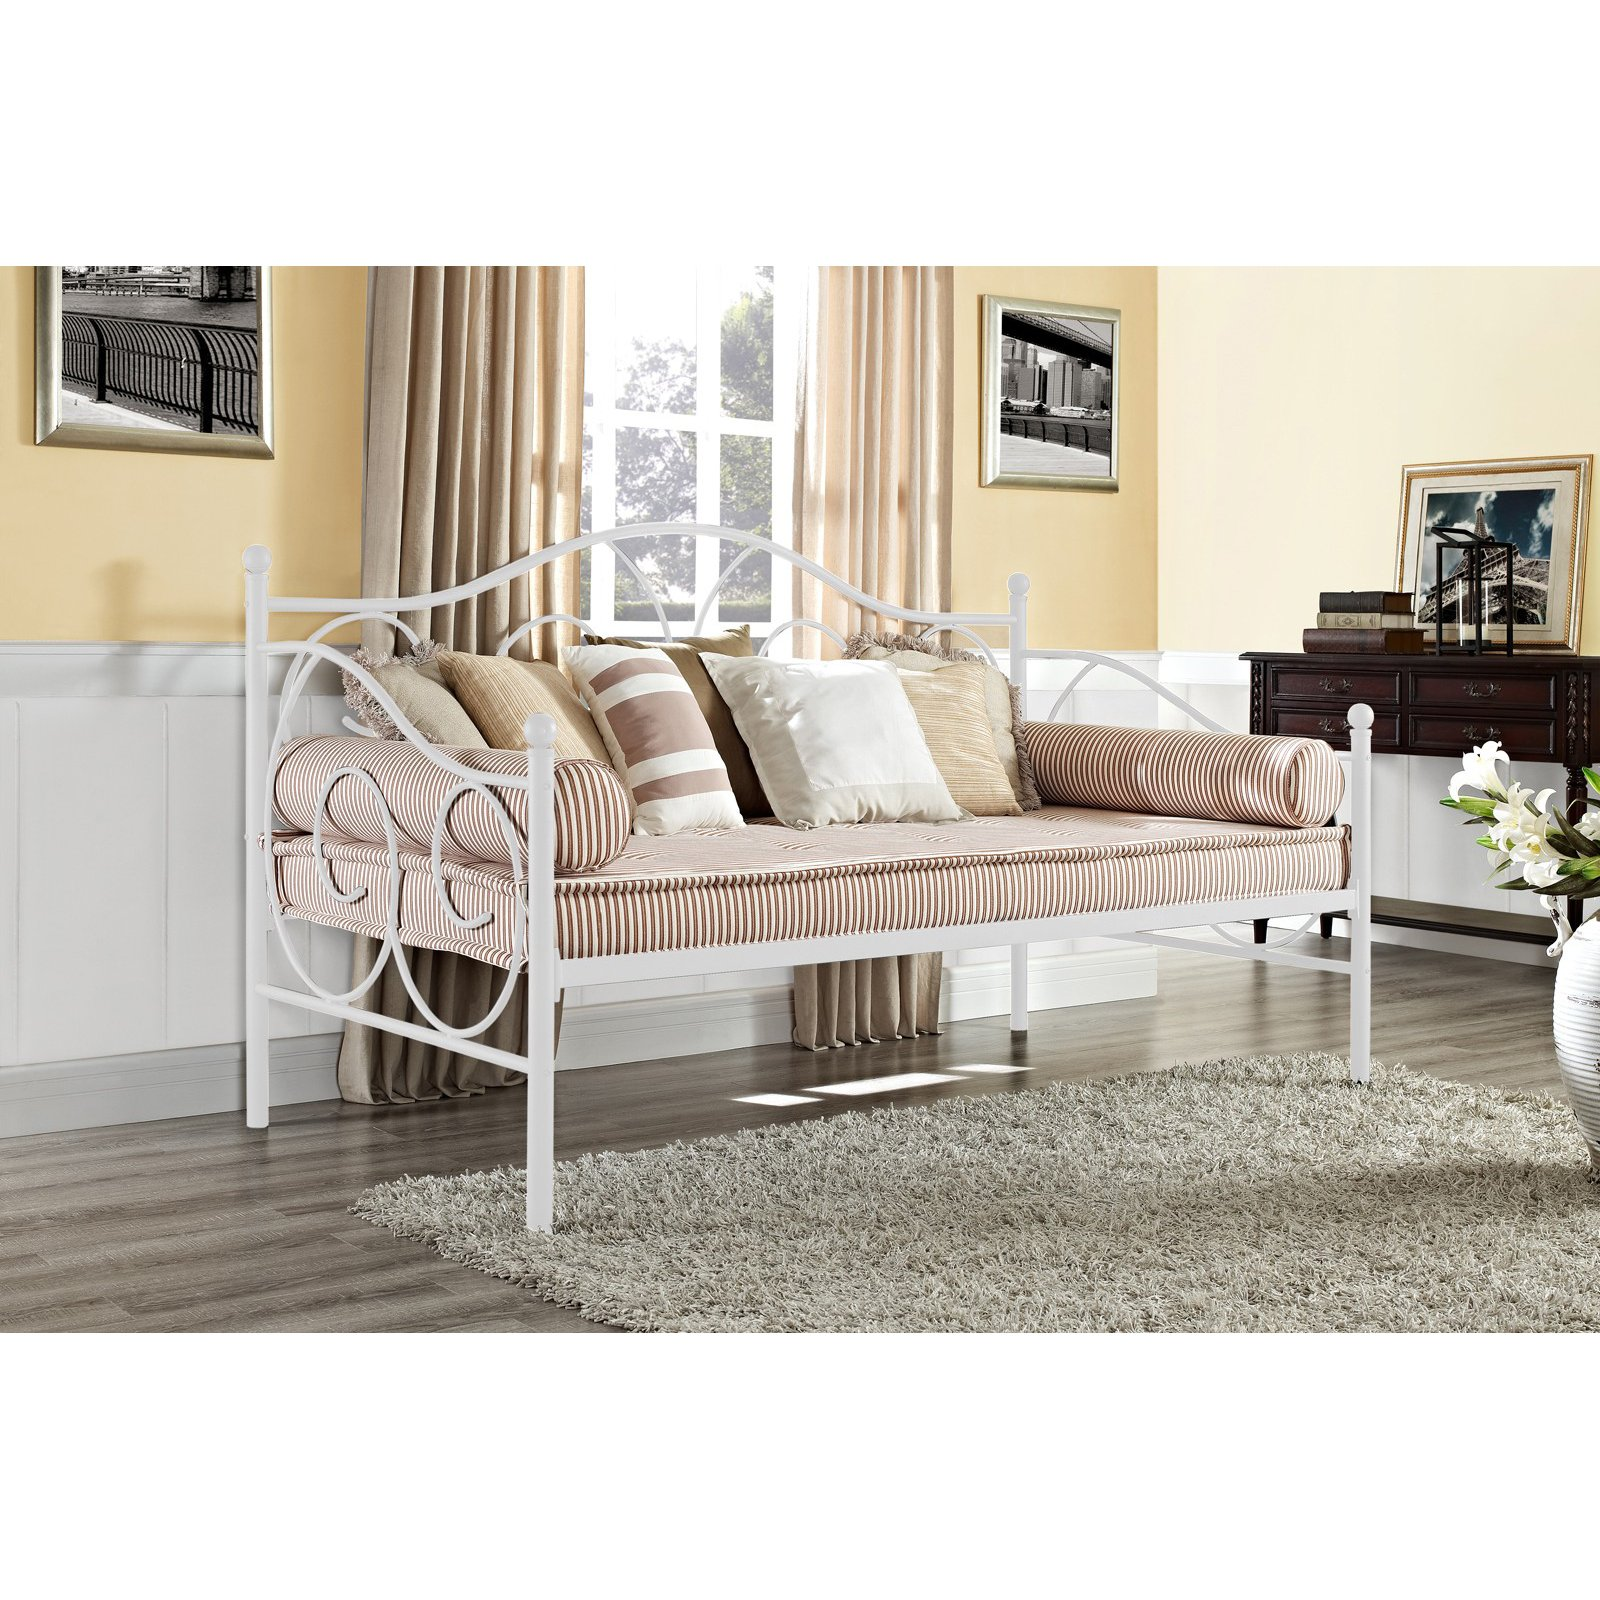 DHP Victoria Metal Frame Daybed, Twin Size, Multiple Colors